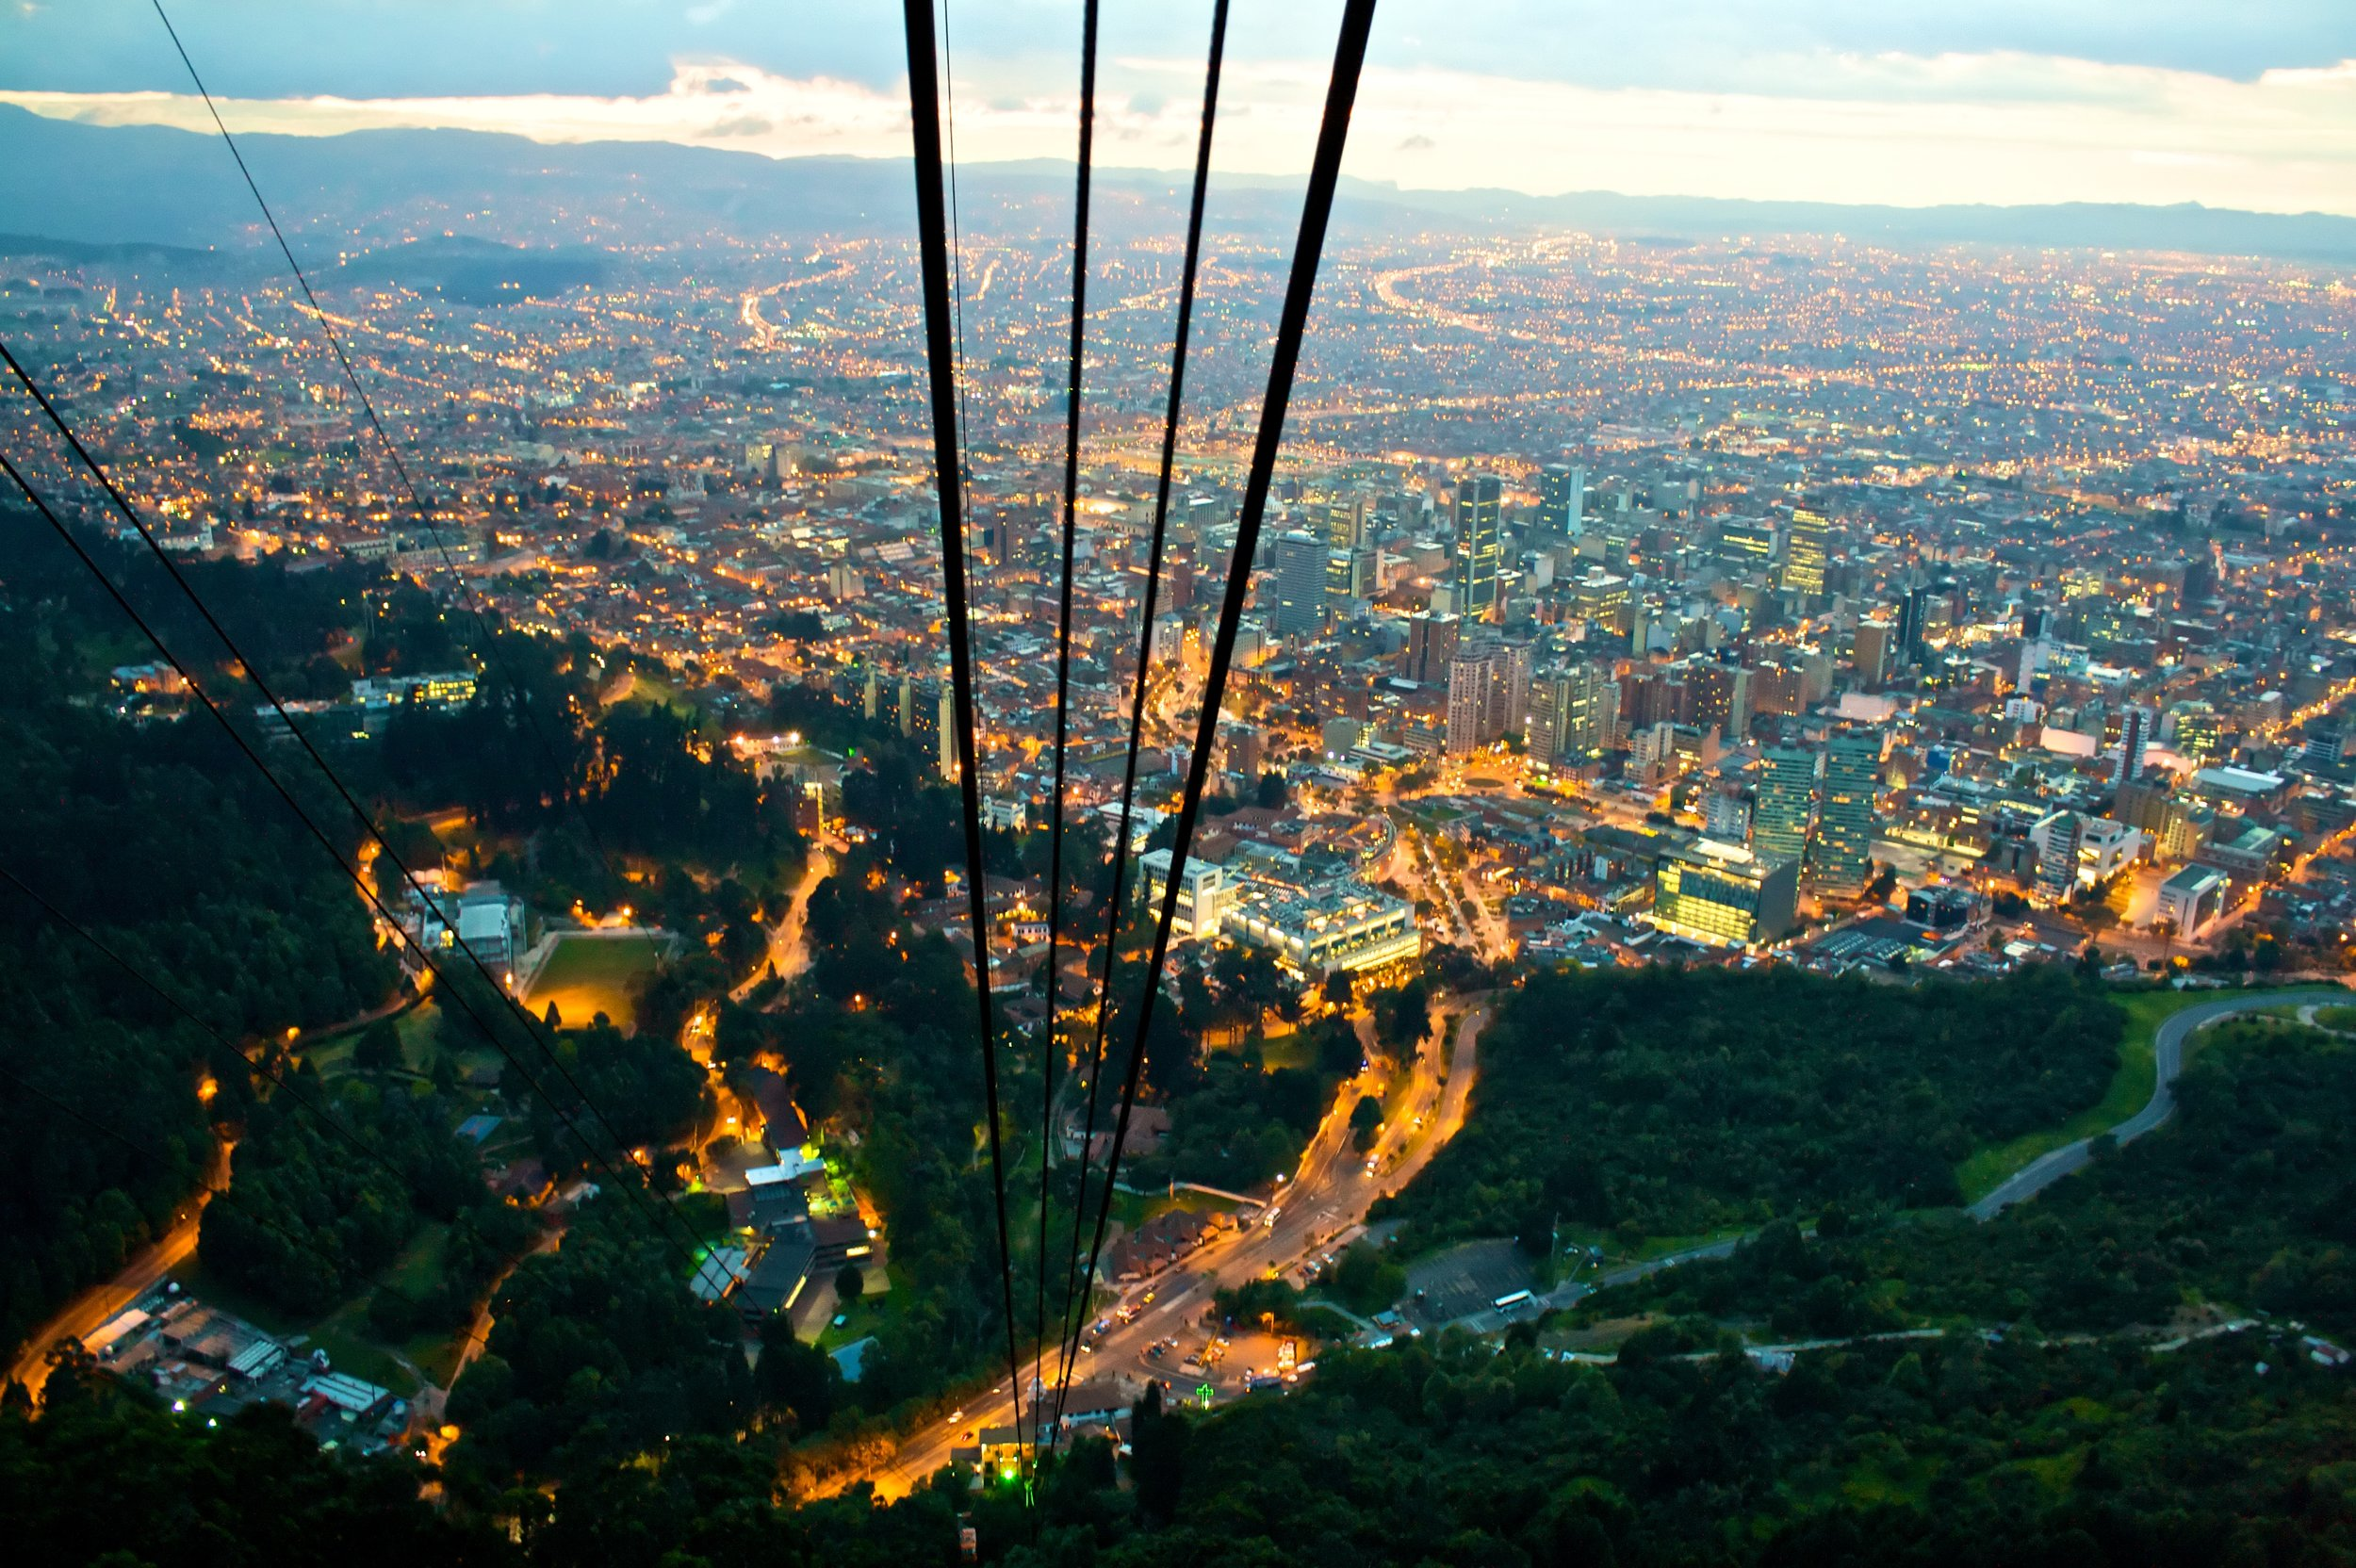 View from Monserrate Hill in Bogota, Colombia